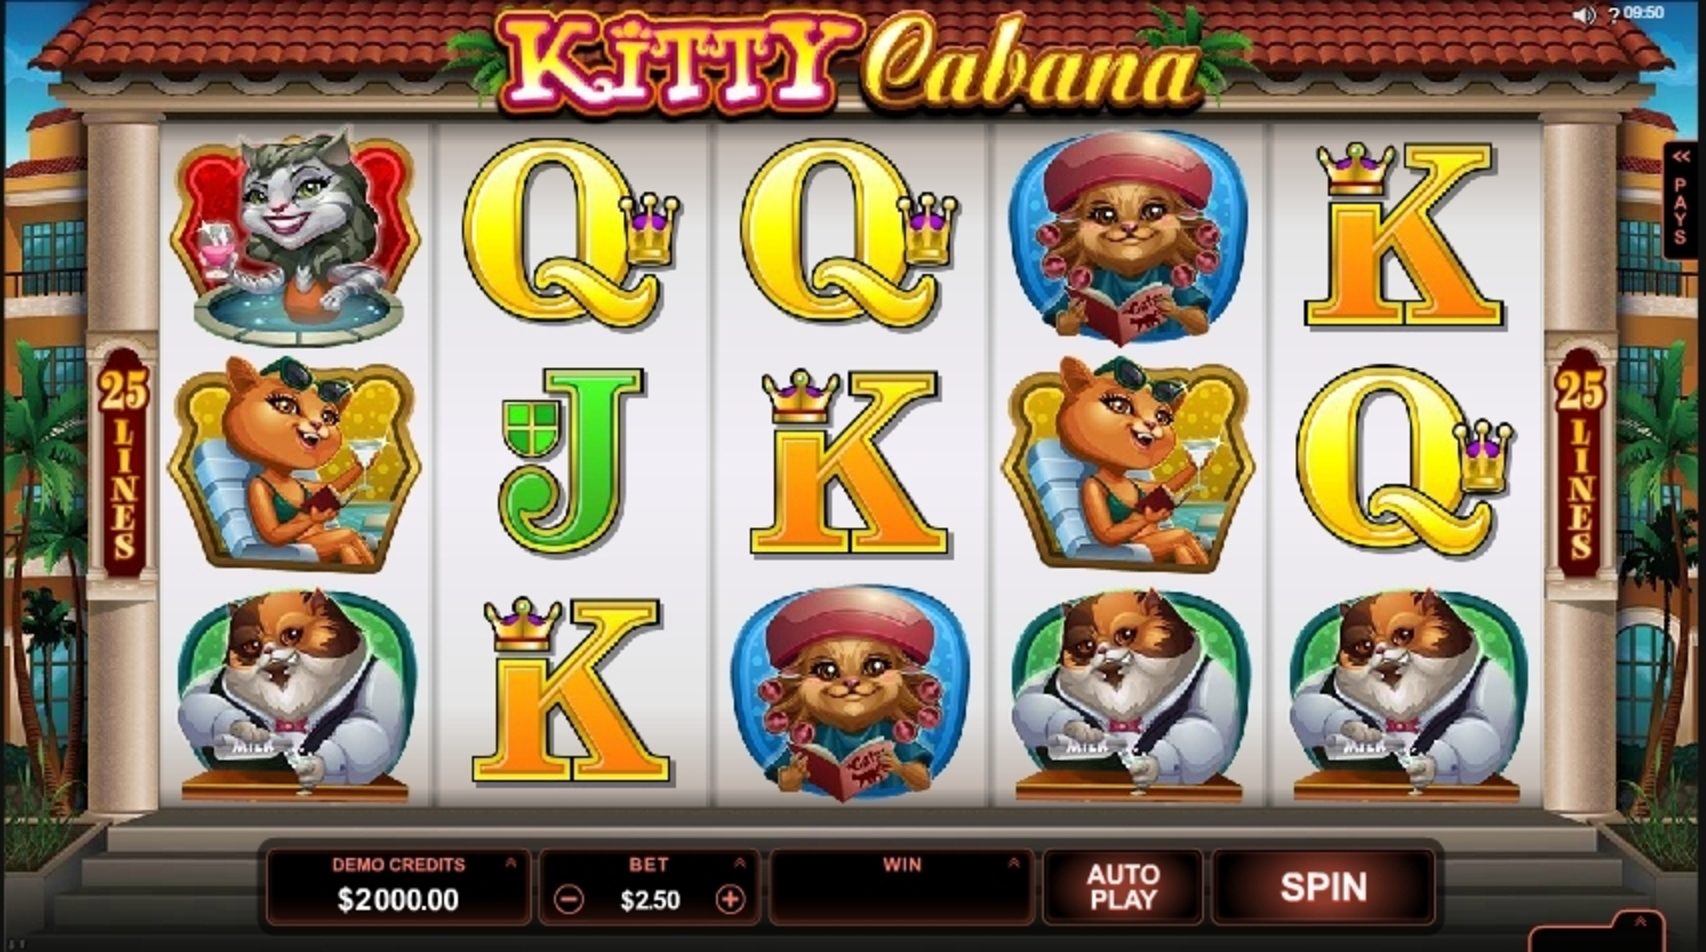 Reels in Kitty Cabana Slot Game by Microgaming